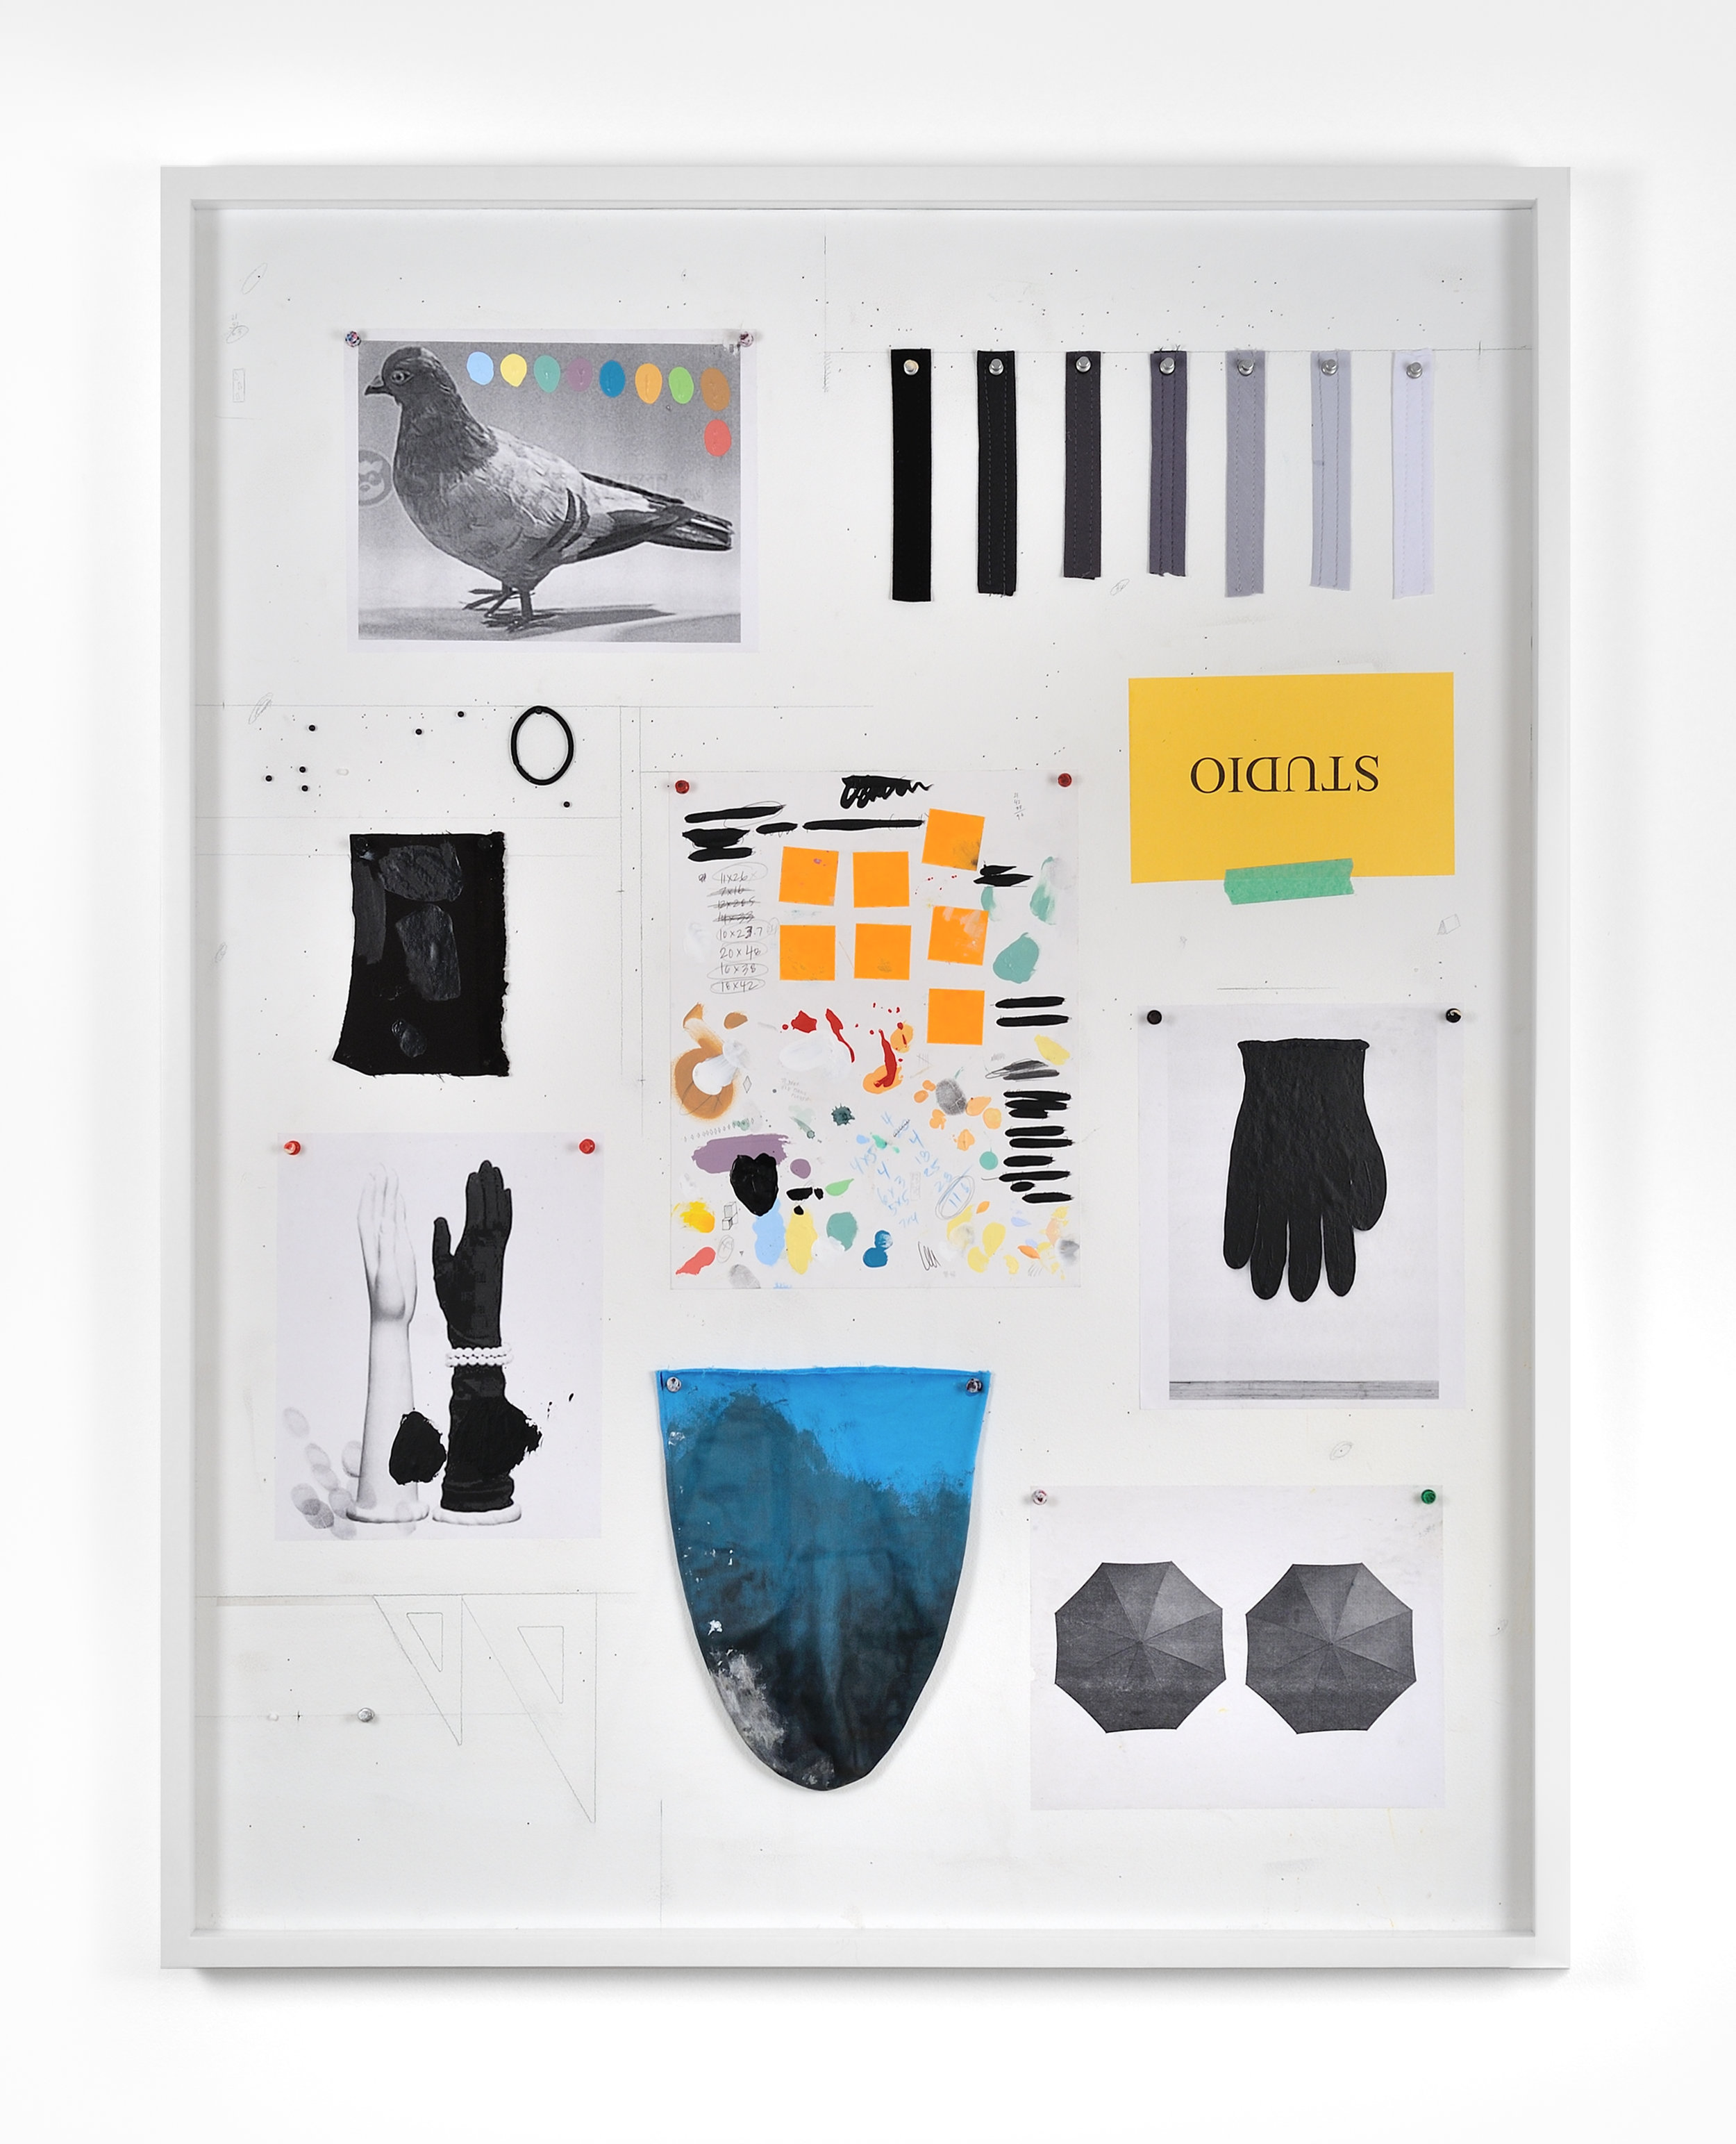 Untitled Still Life (ARTIFICIAL PIGEON AND PANTY STRAPS), 2015 sheetrock, latex paint, acrylic, graphite, laser prints, greyscale panty straps swatches from ONCE YOU GO BLACK, aluminum thumbtacks, map tacks, material test, hair band, acrylic graphite, ball point pen, post-it notes on paper, plastic thumbtacks, STUDIO label and green tape from LA Packing, fingertip test 121,3 x 93,4 cm - 47 3/4 x 36 3/4 inches (framed)